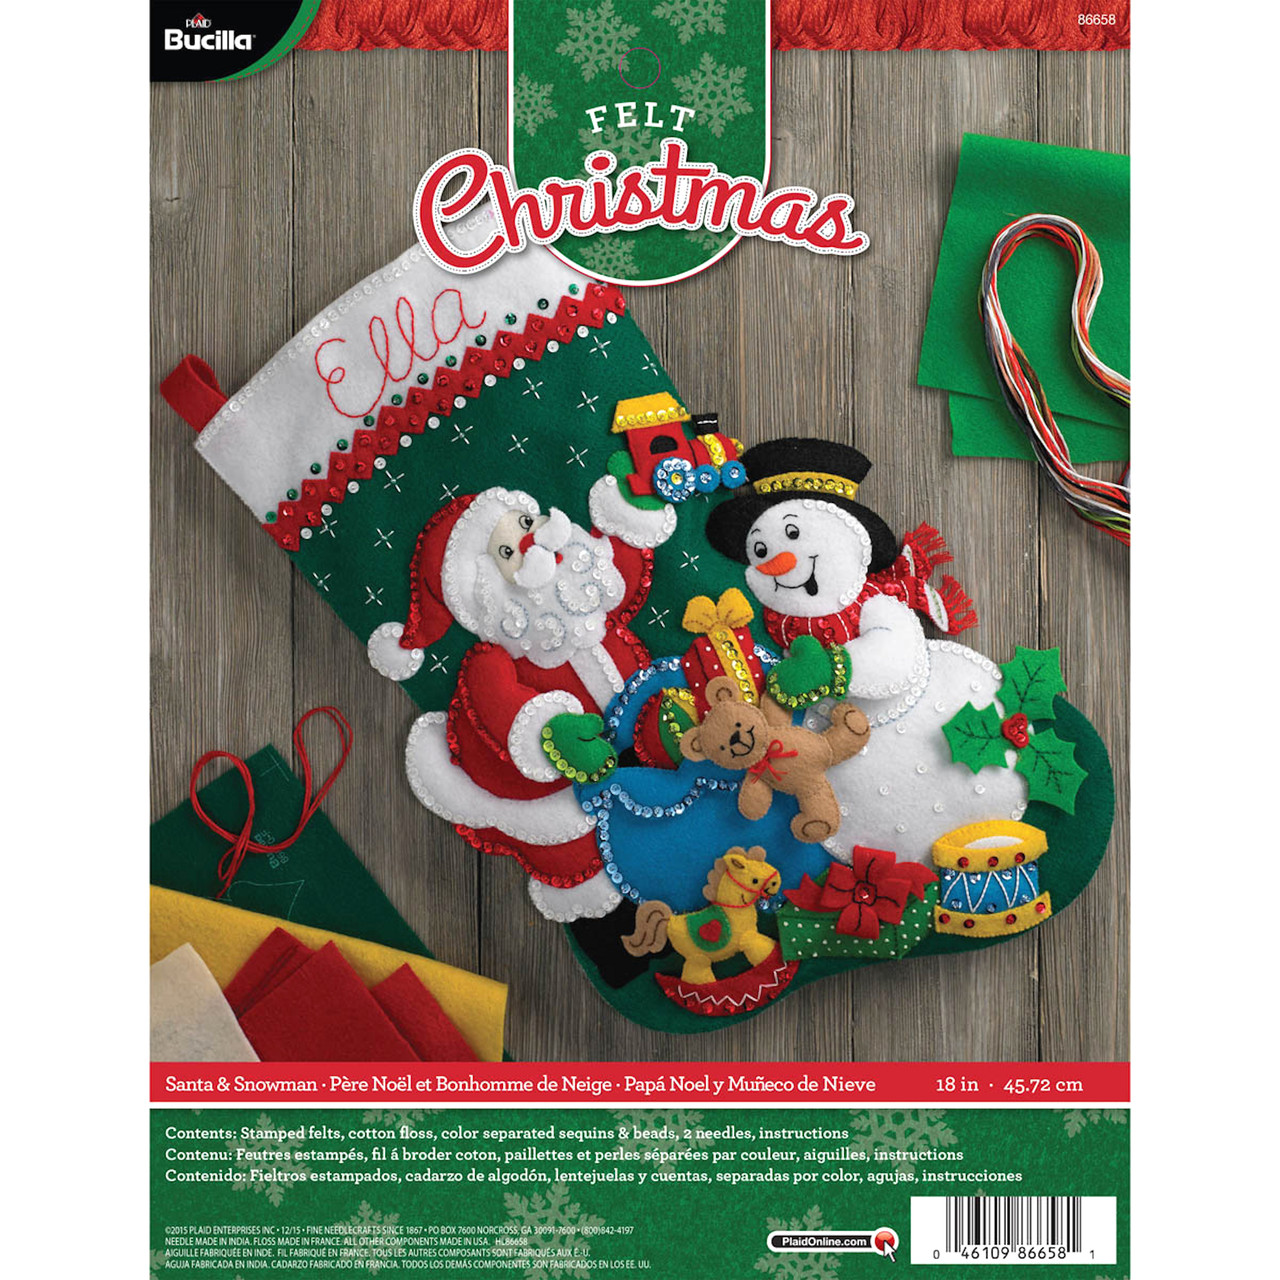 Plaid / Bucilla - Santa and Snowman Stocking